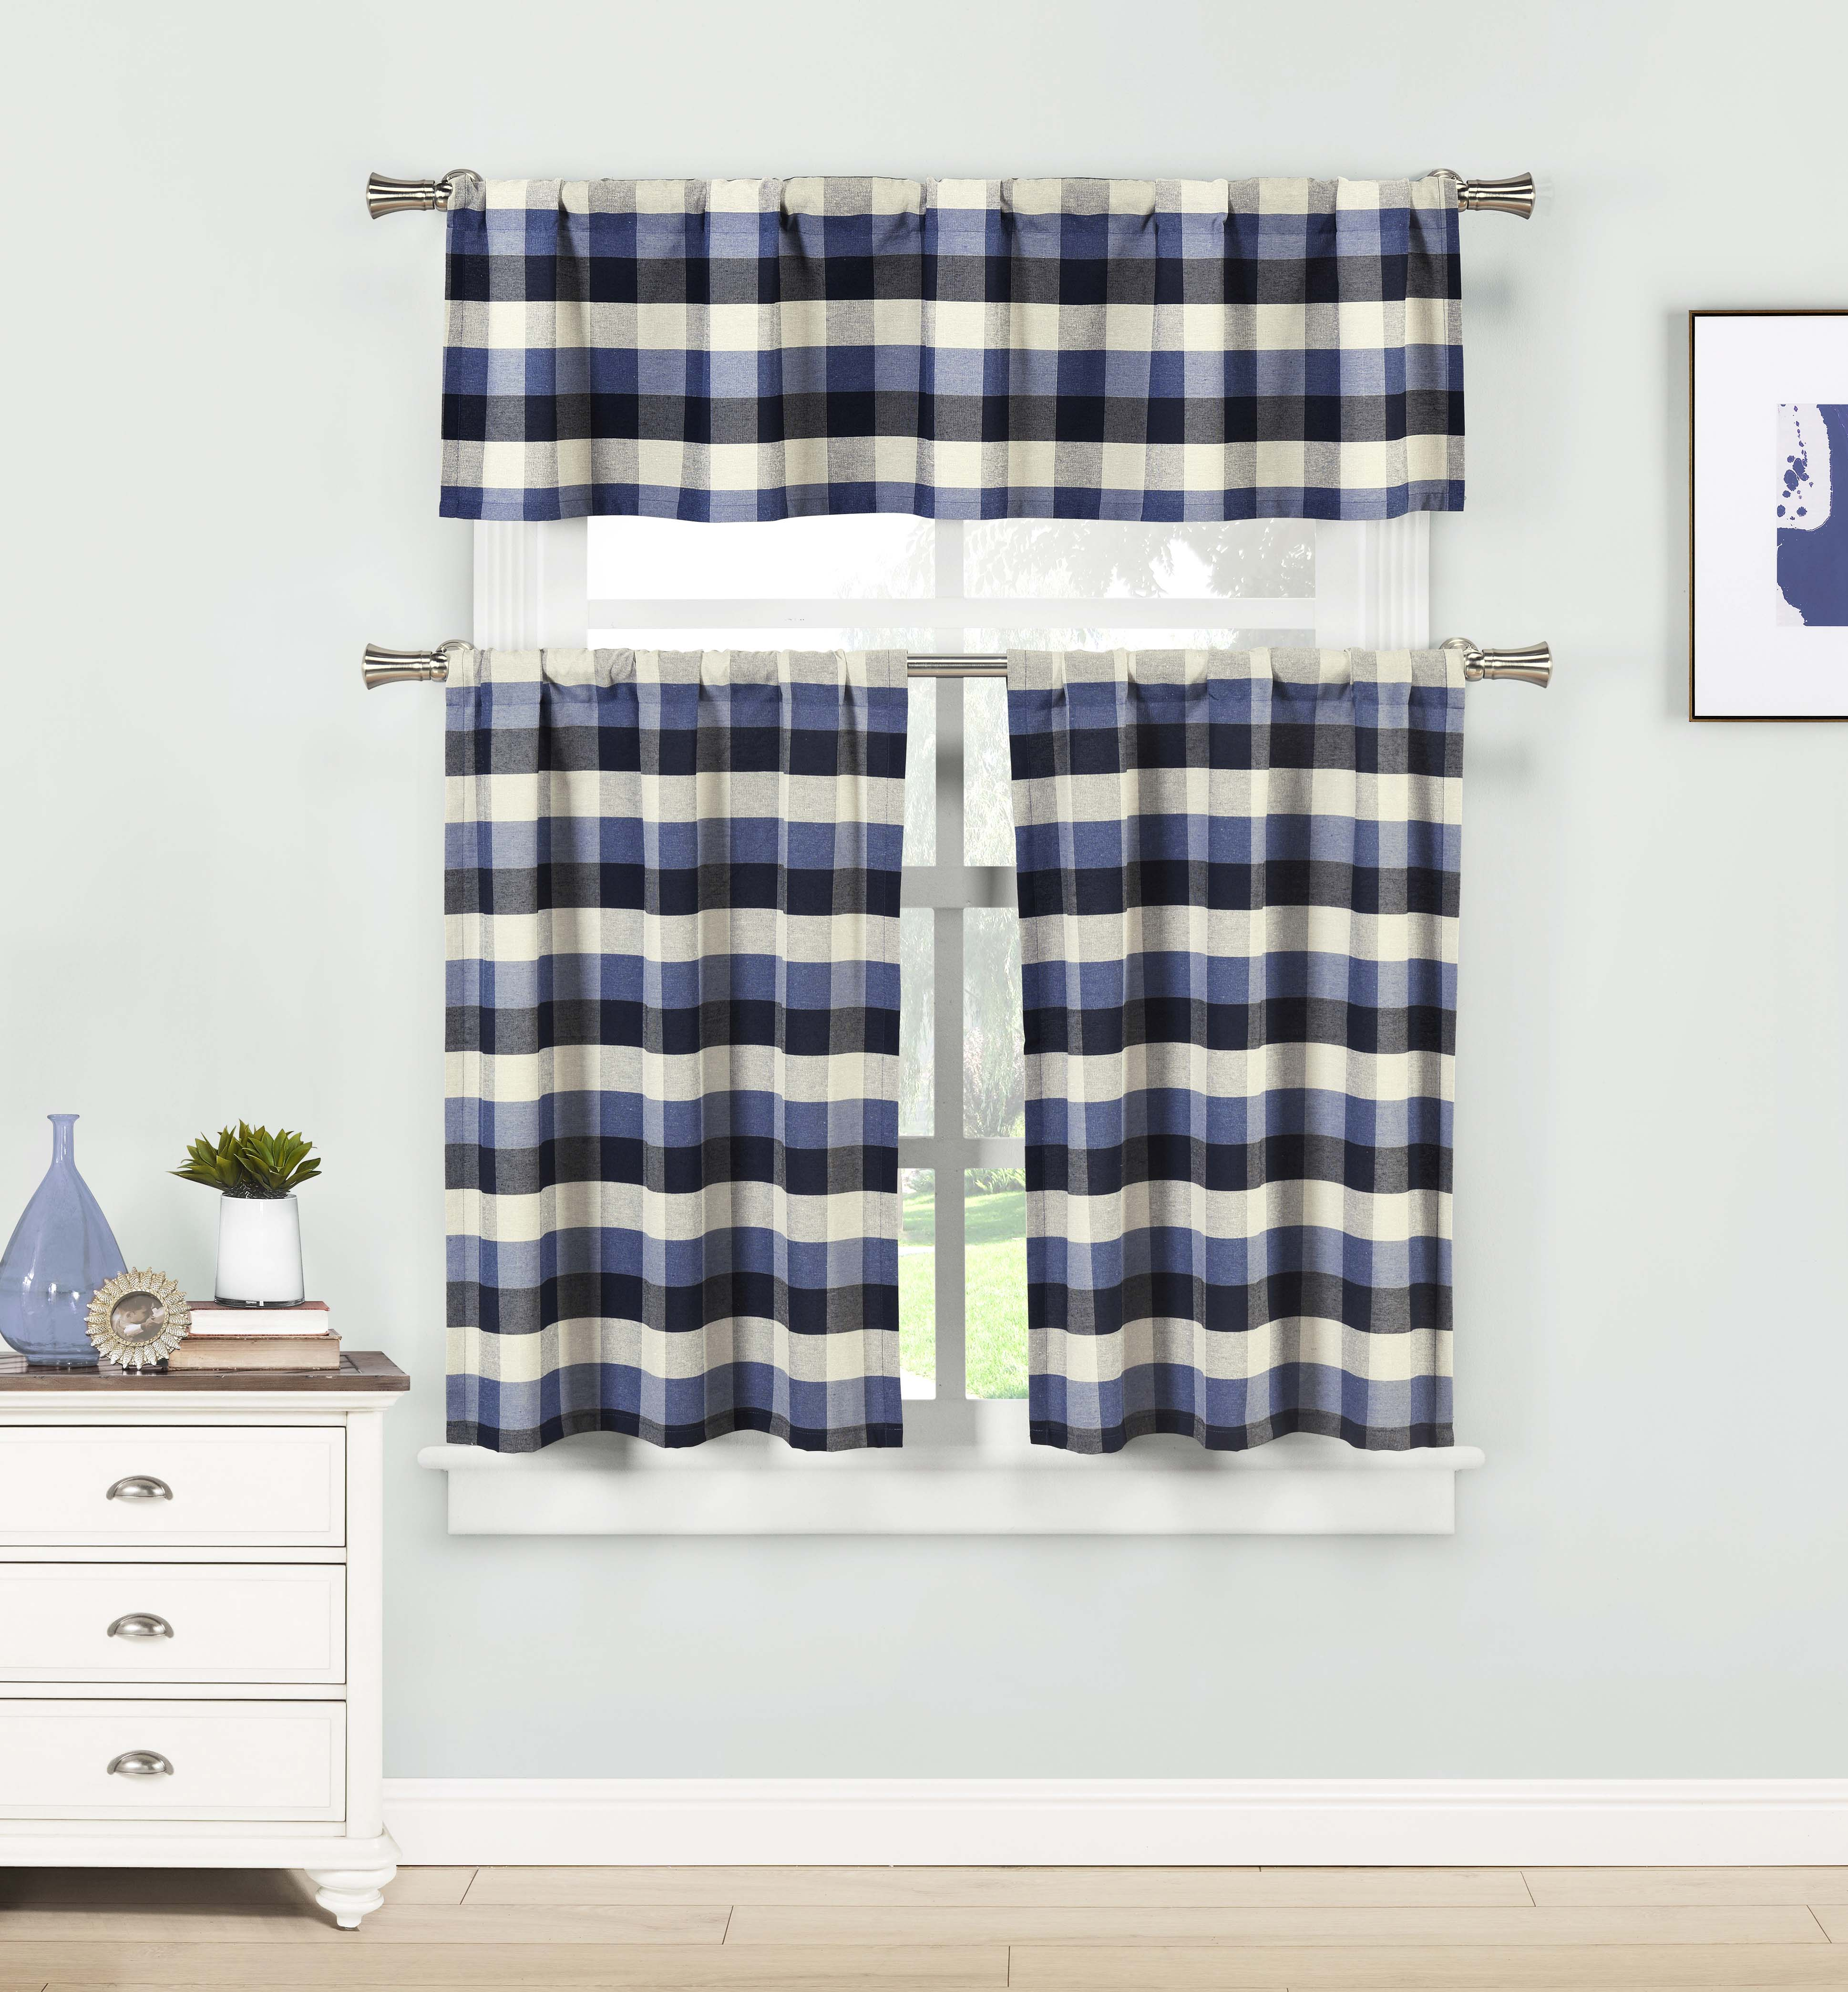 Blue Three Piece Kitchen/Cafe Tier Window Curtain Set: Large Gingham Check Pattern, Cotton Blend Fabric